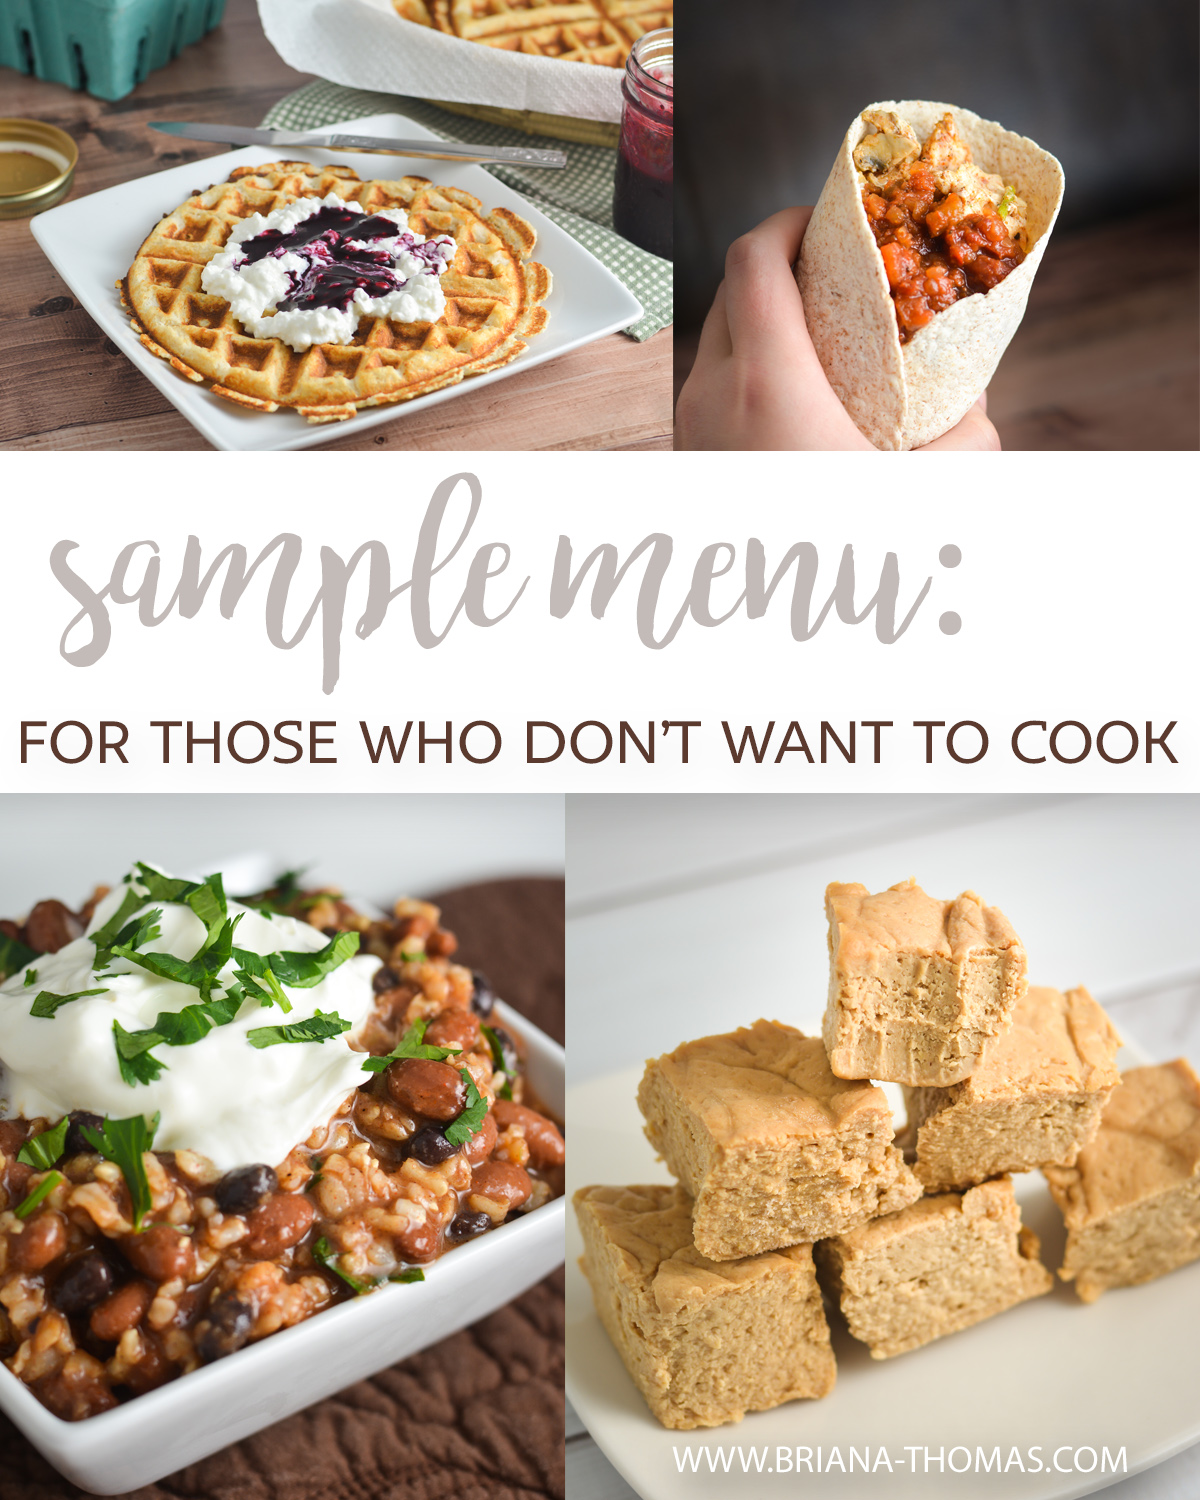 I was recently asked to come up with a THM-friendly sample menu for those who don't want to cook - so here's the result! Low glycemic, sugar free recipes